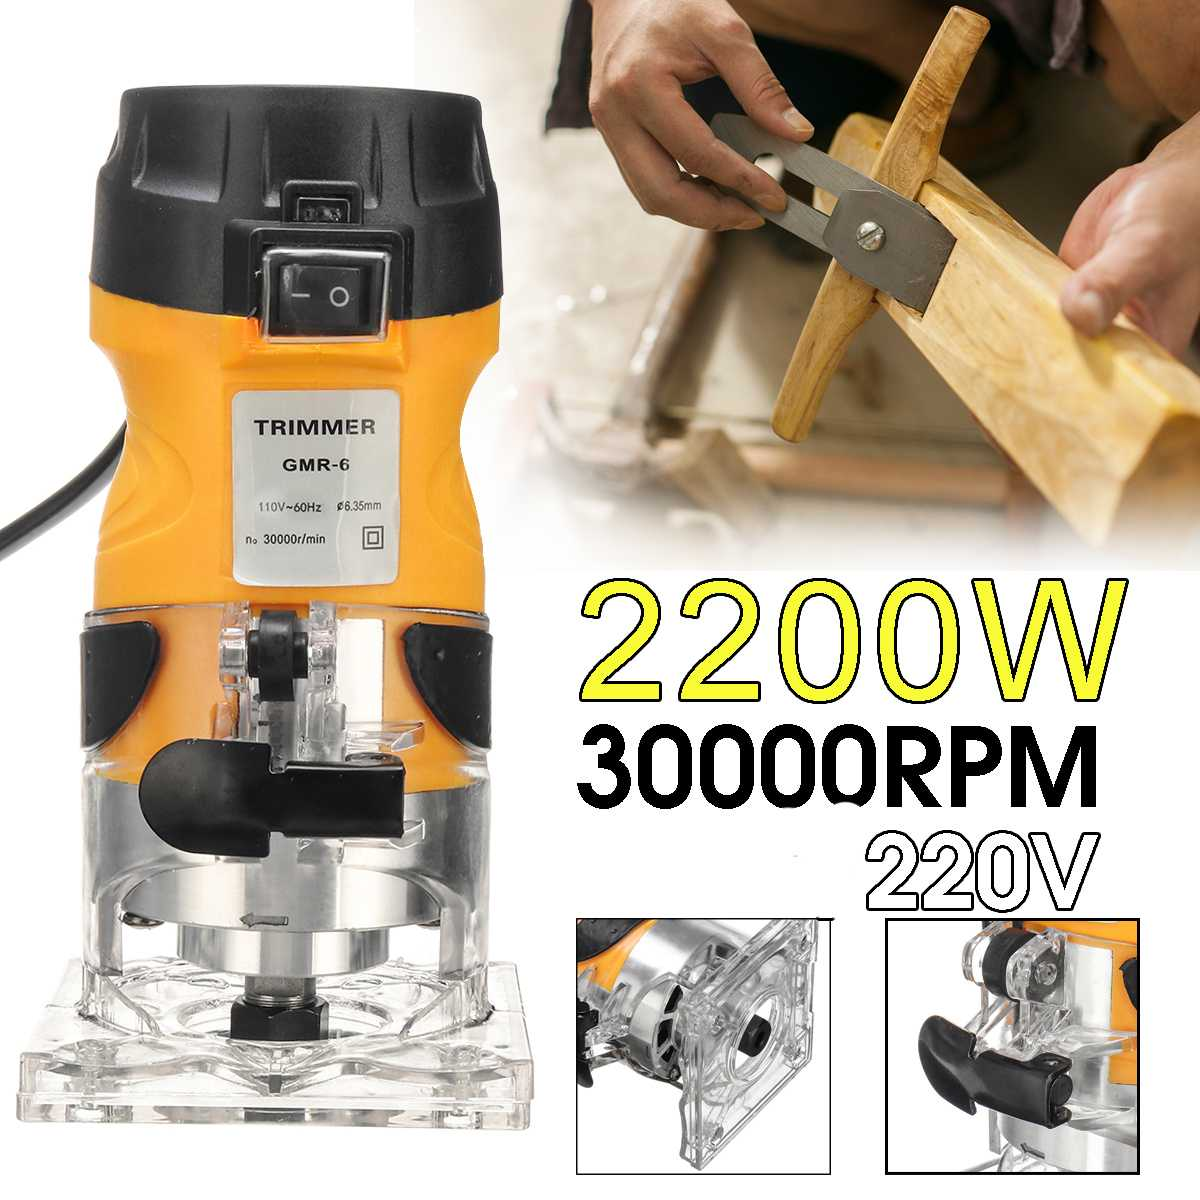 30000Rmp 2200W Woodworking Electric Trimmer Wood Milling Engraving Slotting Trimming Machine Hand Carving Machine Wood Router